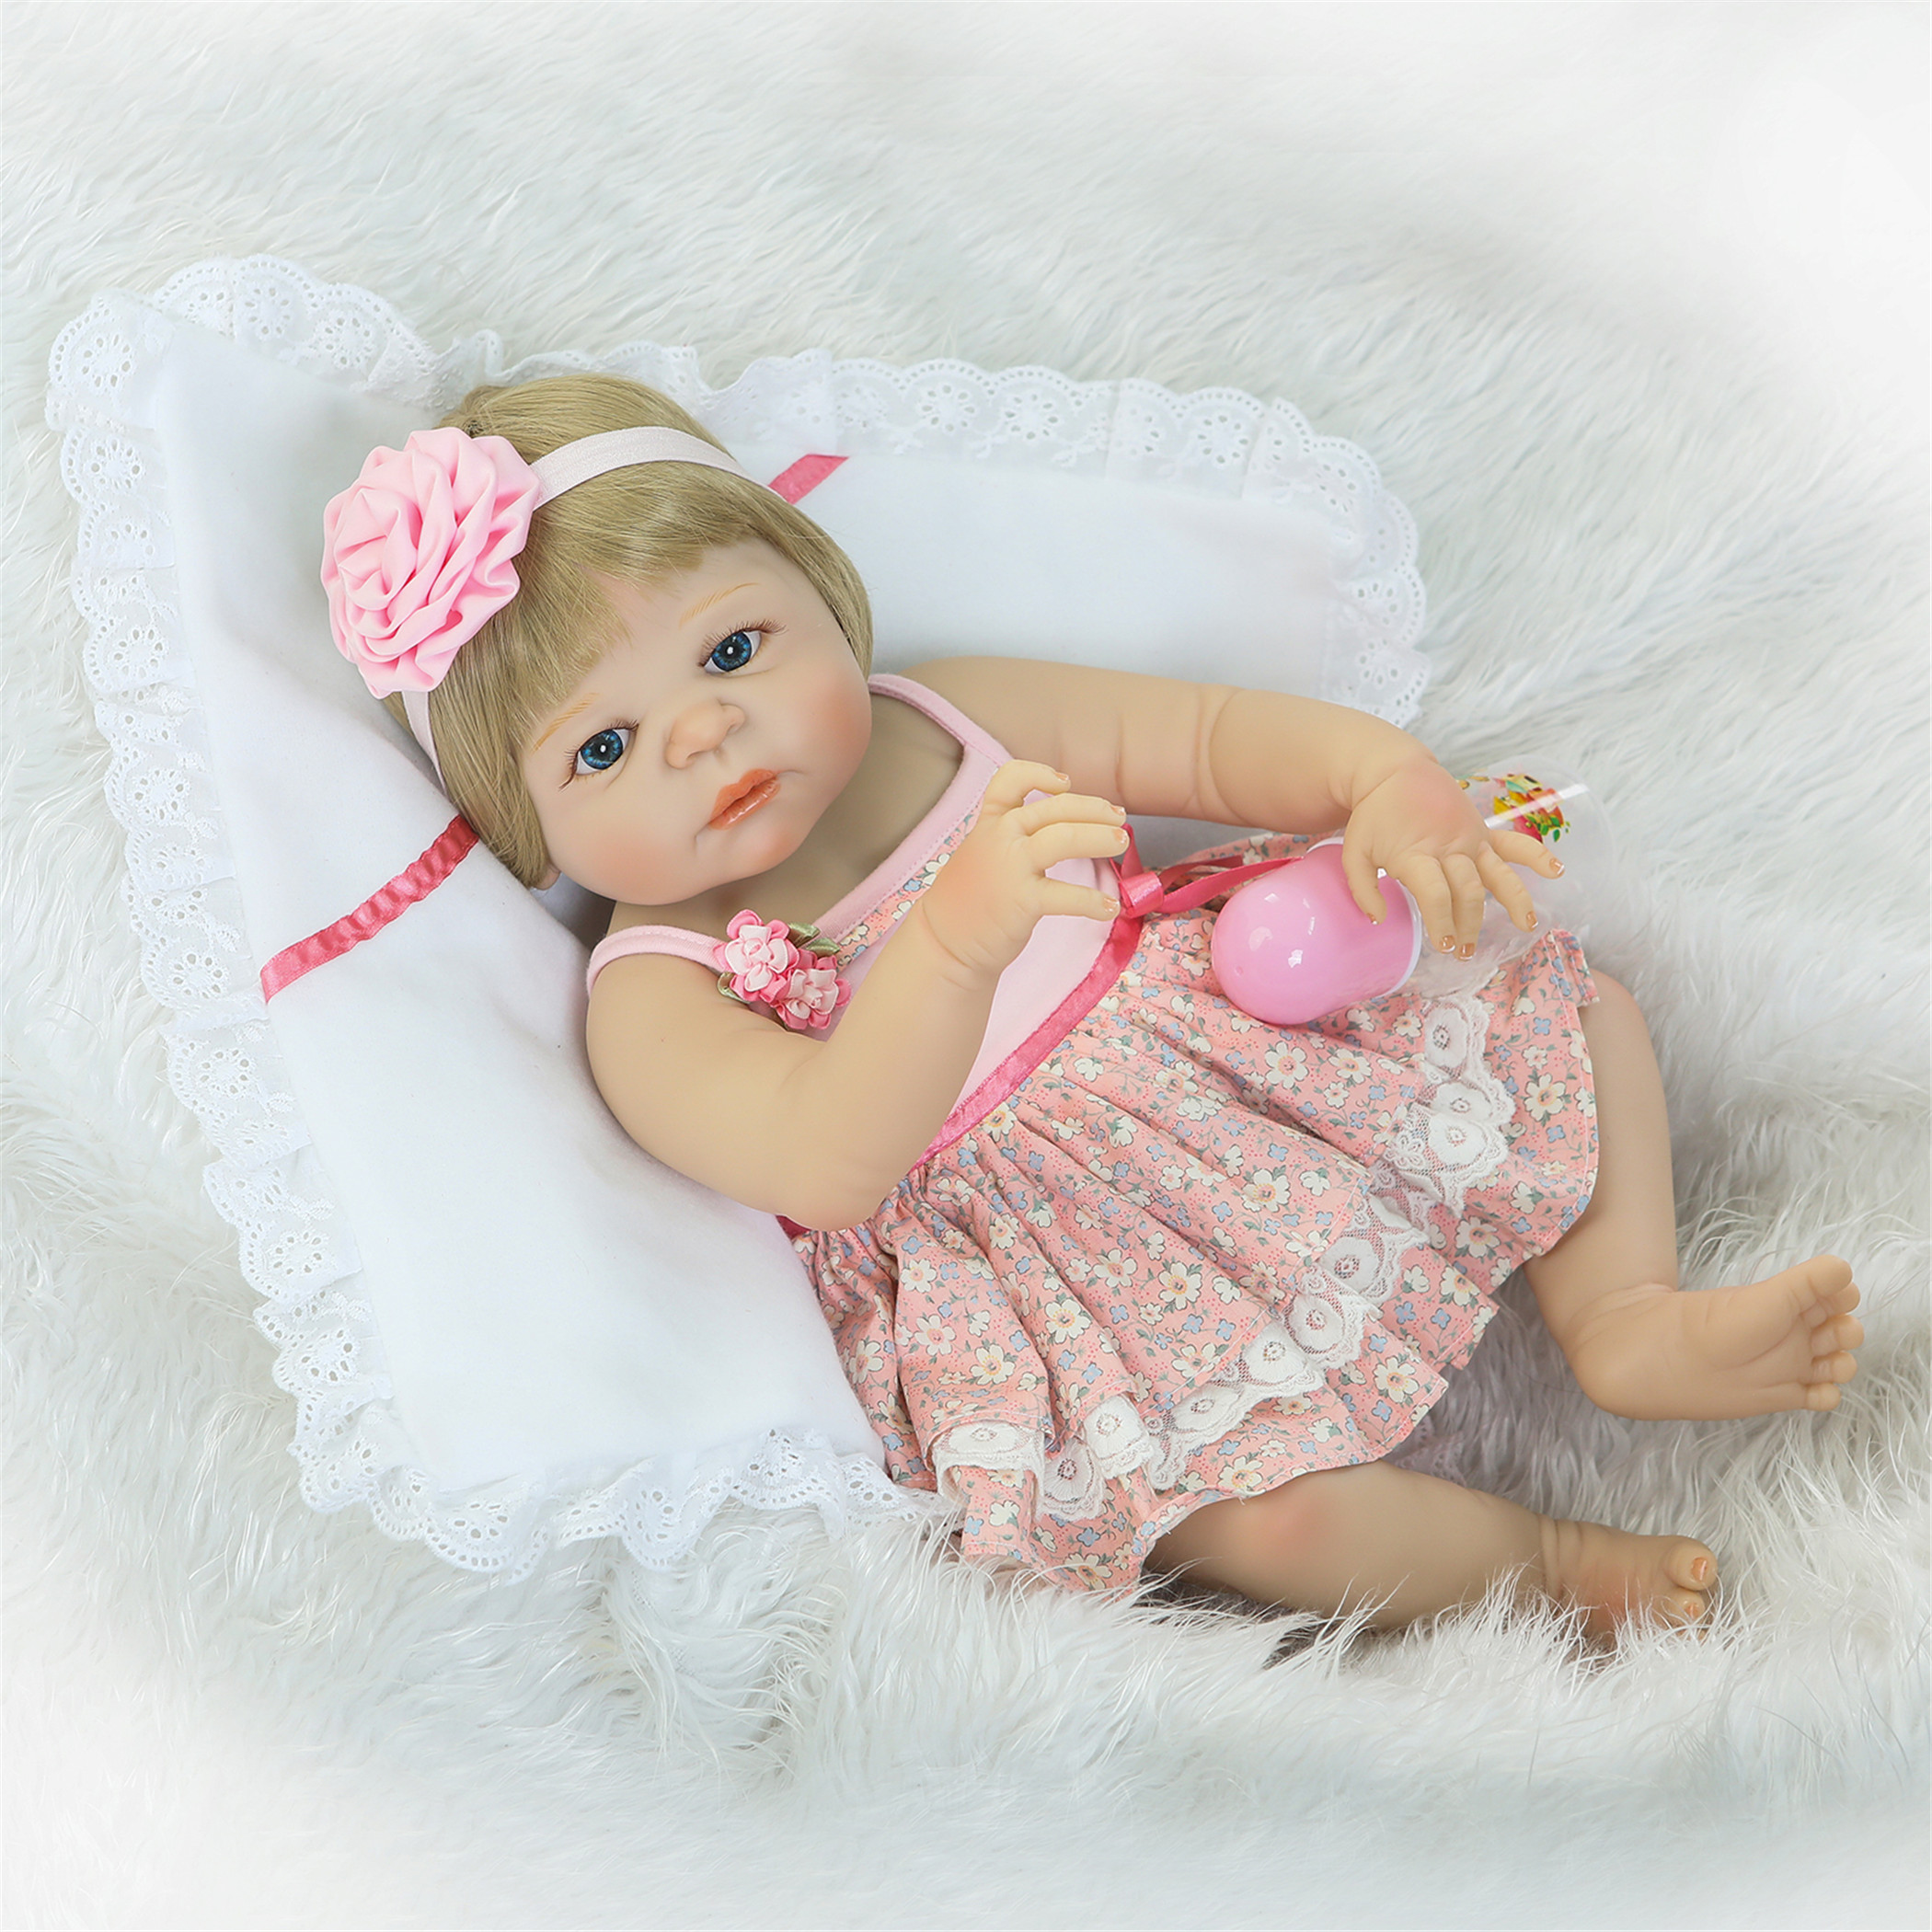 npk collection reborn baby doll soft silicone vinyl 22inch 55cm